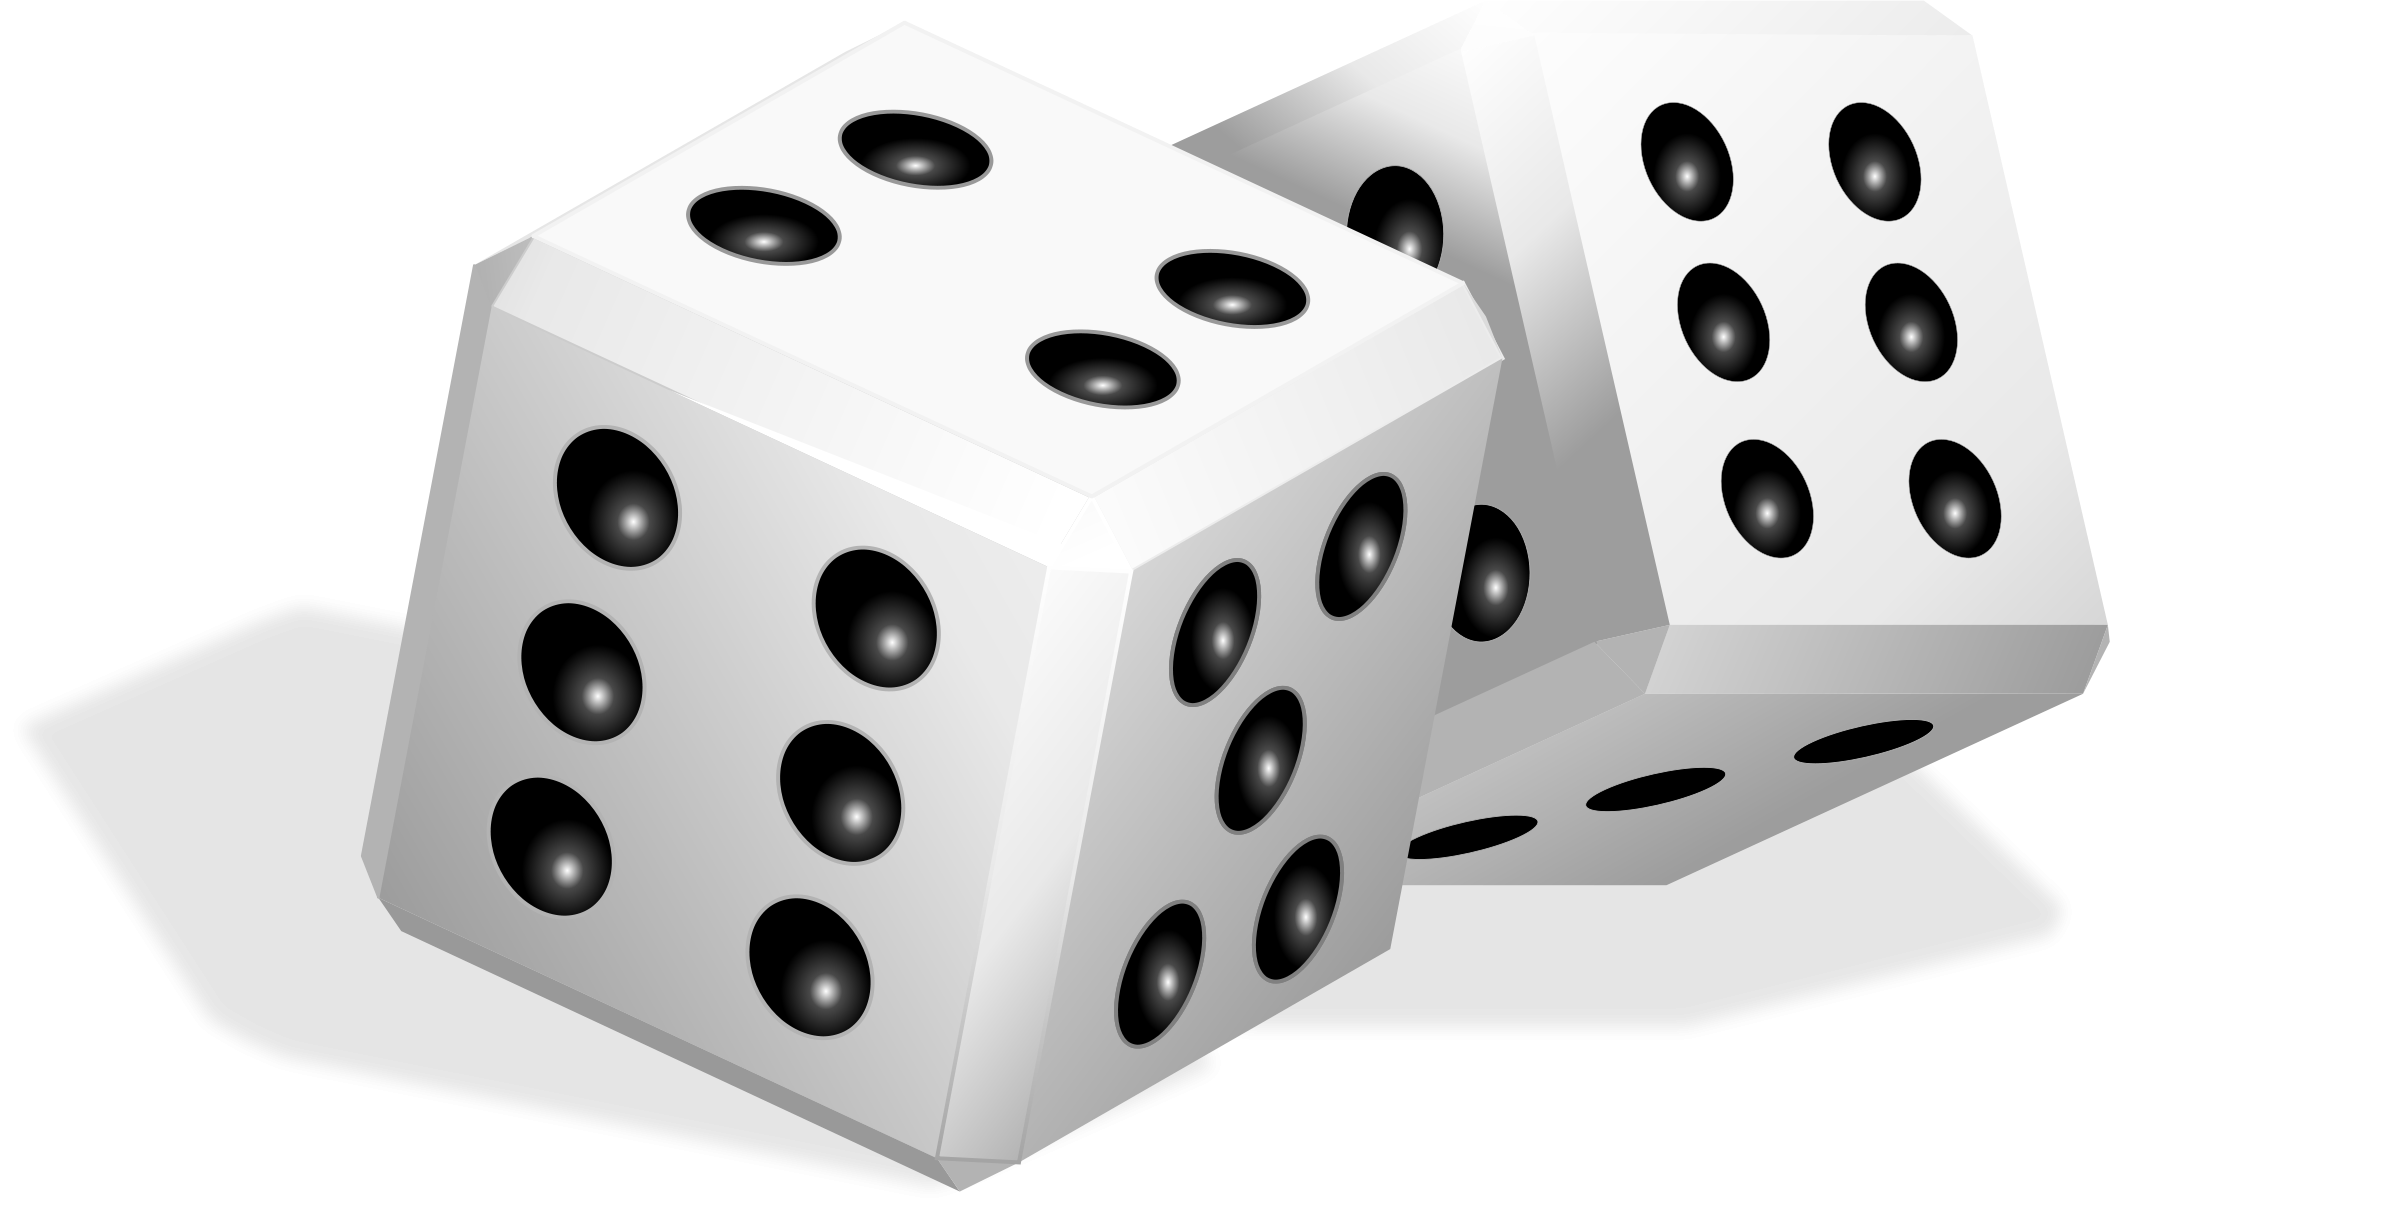 Game clipart remote. Games dice frames illustrations